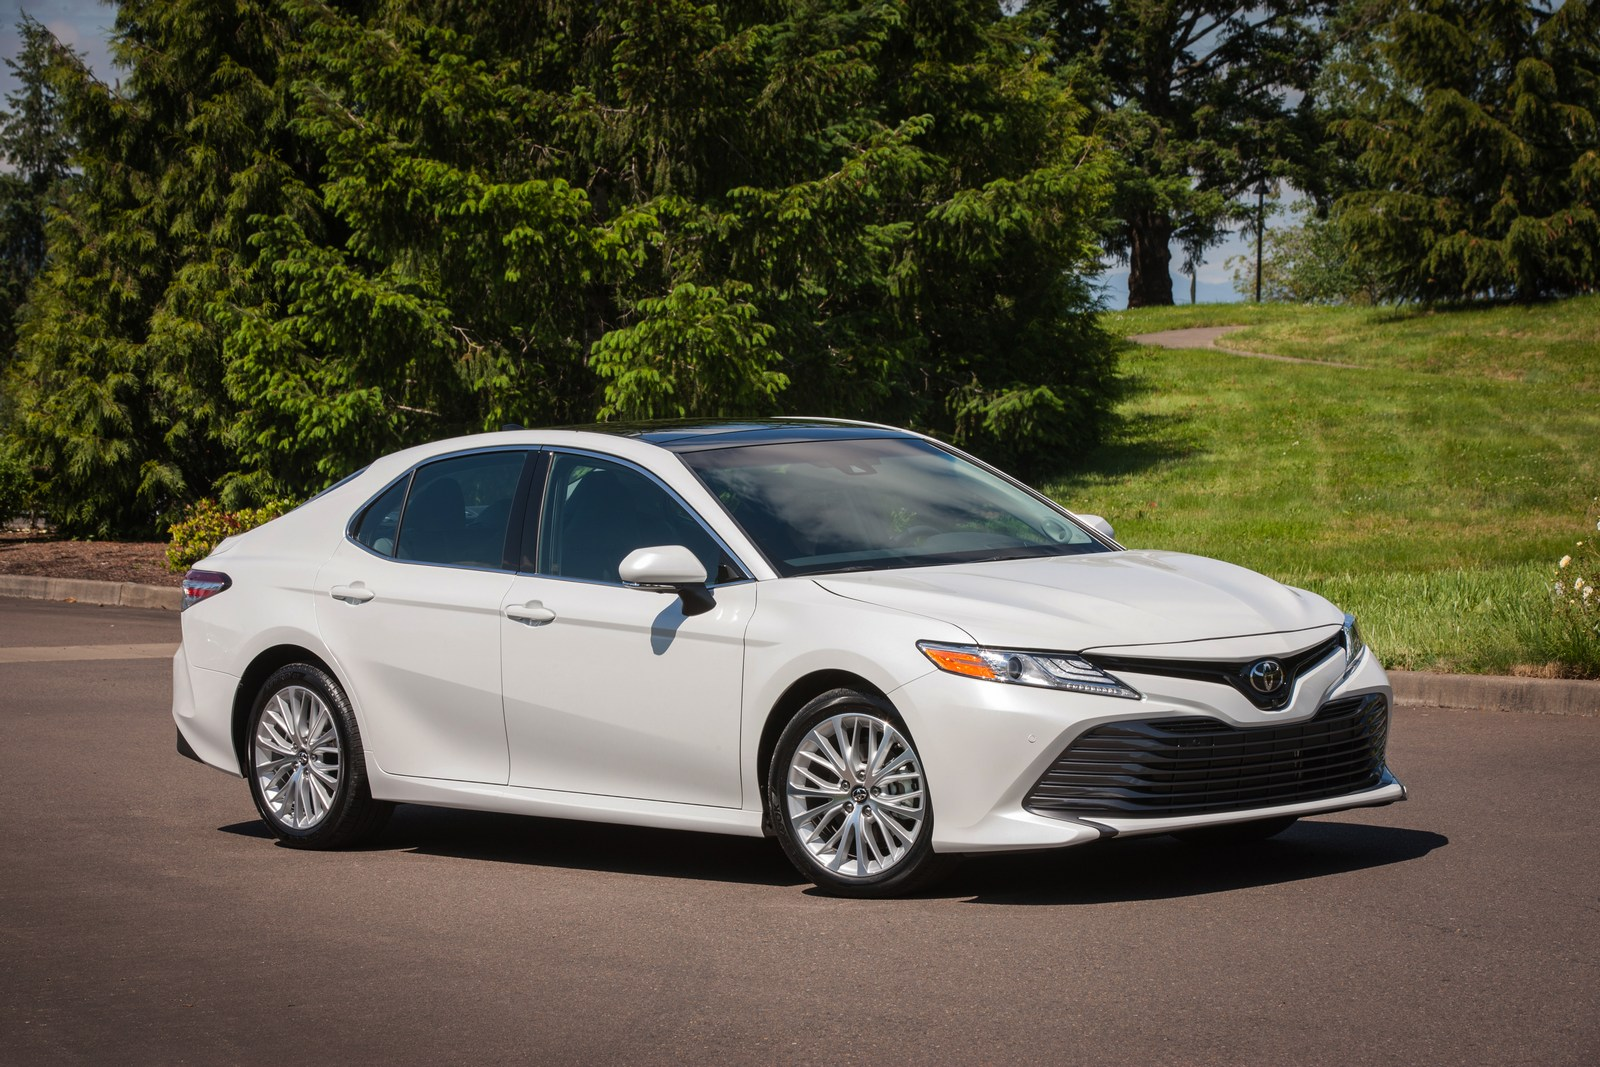 2018 Honda Accord Vs 2018 Toyota Camry Let The Battle